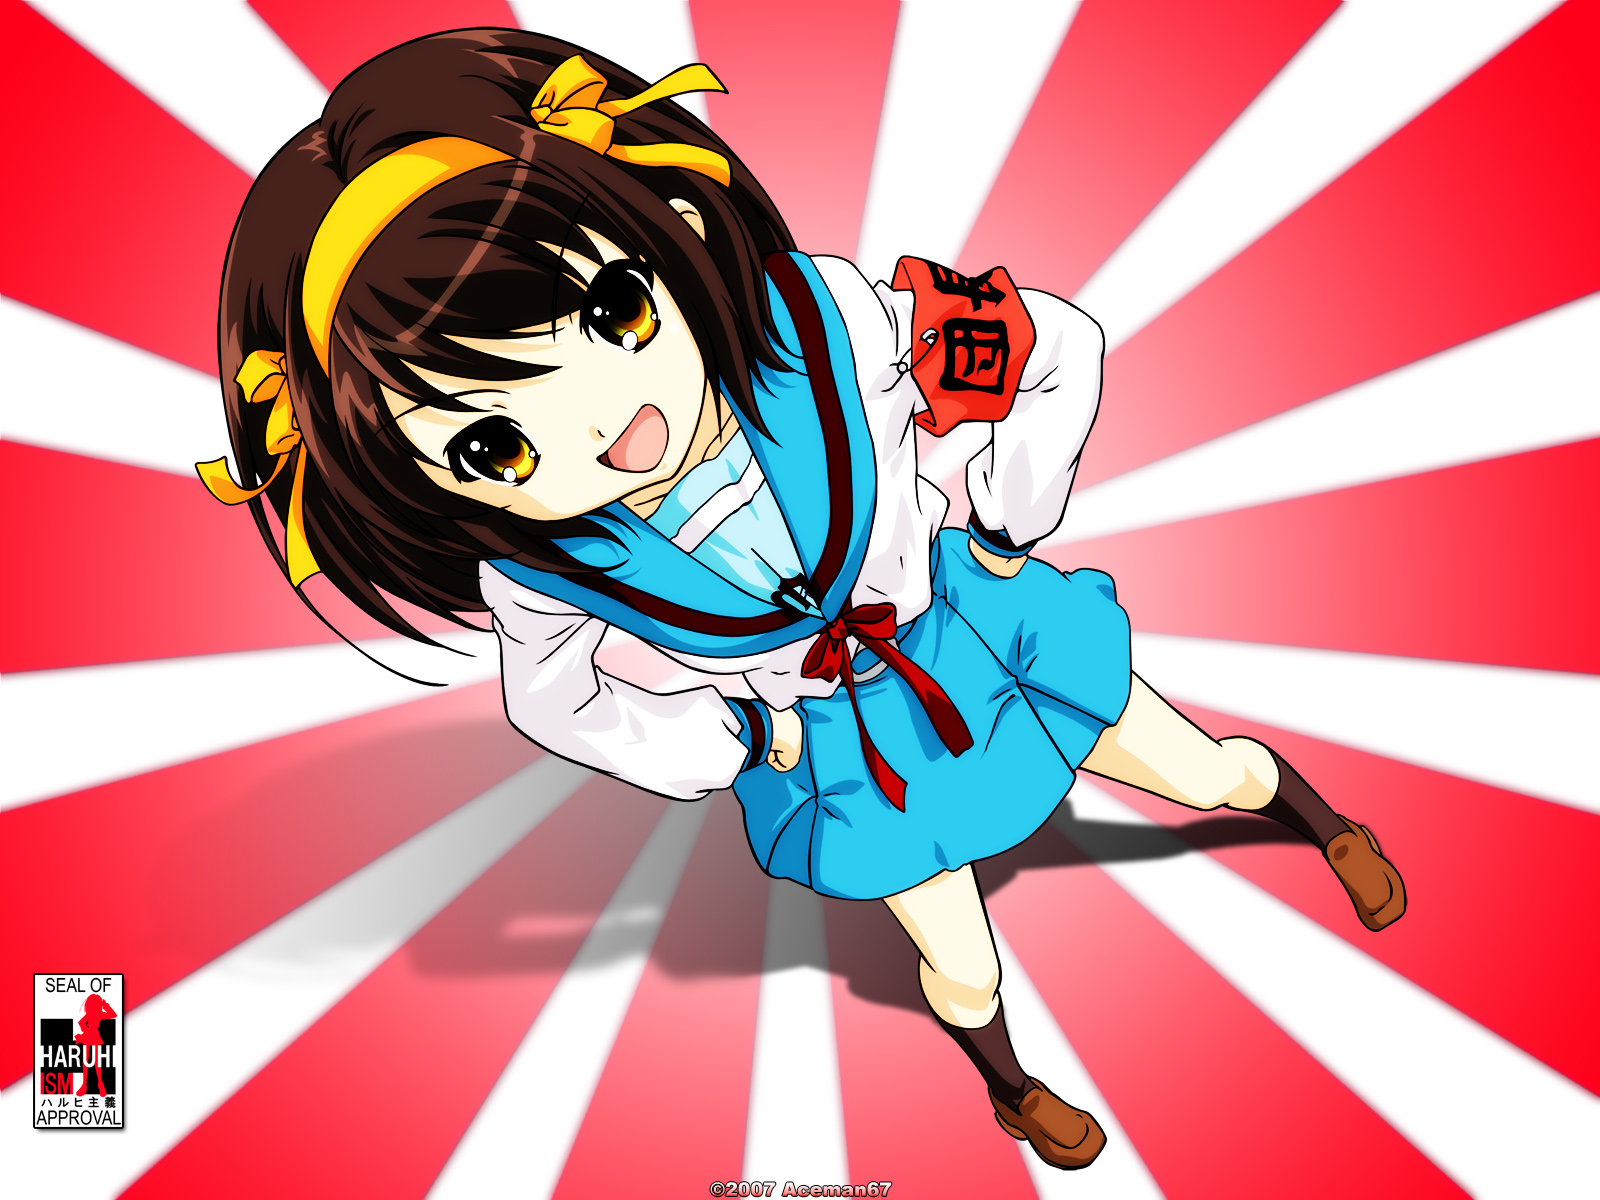 Anime Girl Wallpapers Haruhi Suzumiya Wallpaper Pack